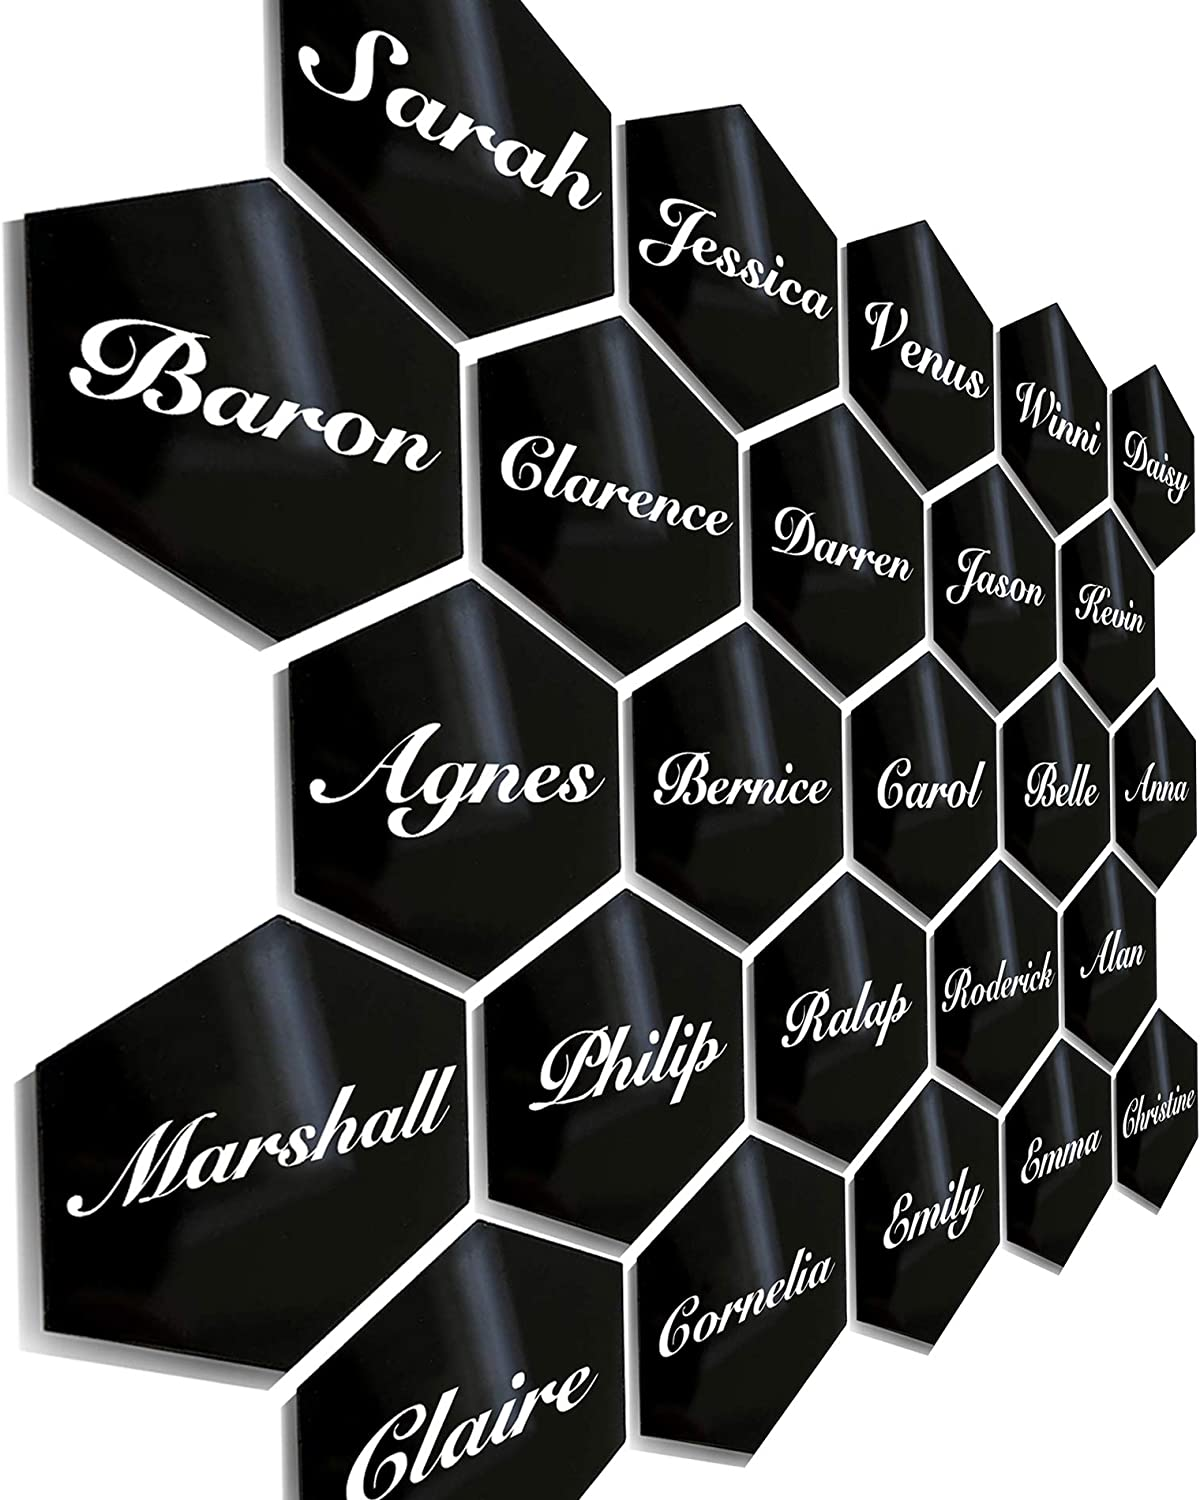 25Pcs Black Hexagon Acrylic Place Card for Wedding Party Dinner Table Special Seat Guest Blanks Handwritten Calligraphy Name Escort Card Signature Logo Food Signs DIY Label Banquet Event Parties Decor